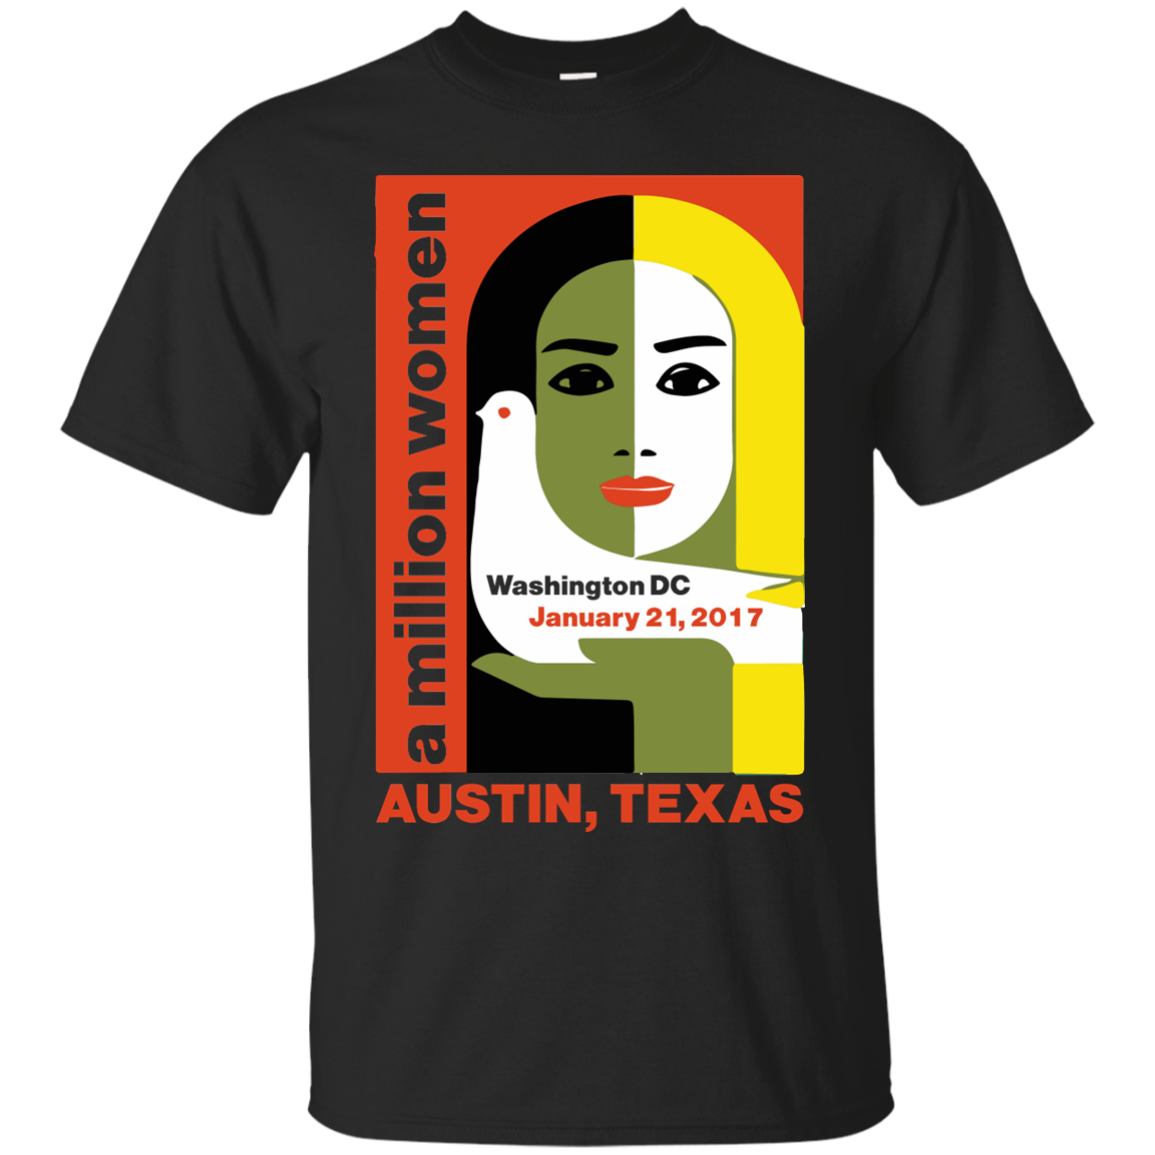 Women 39 s march on austin texas 2017 t shirt for Custom t shirts austin texas